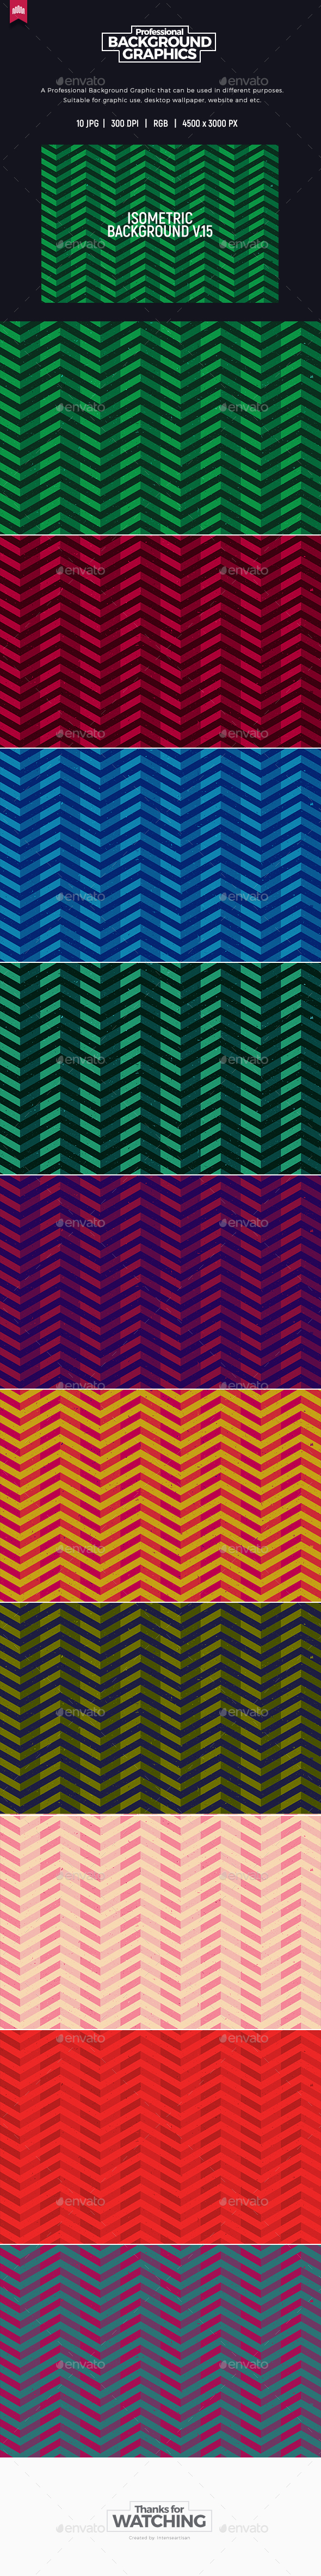 Isometric Background V.15 - Abstract Backgrounds